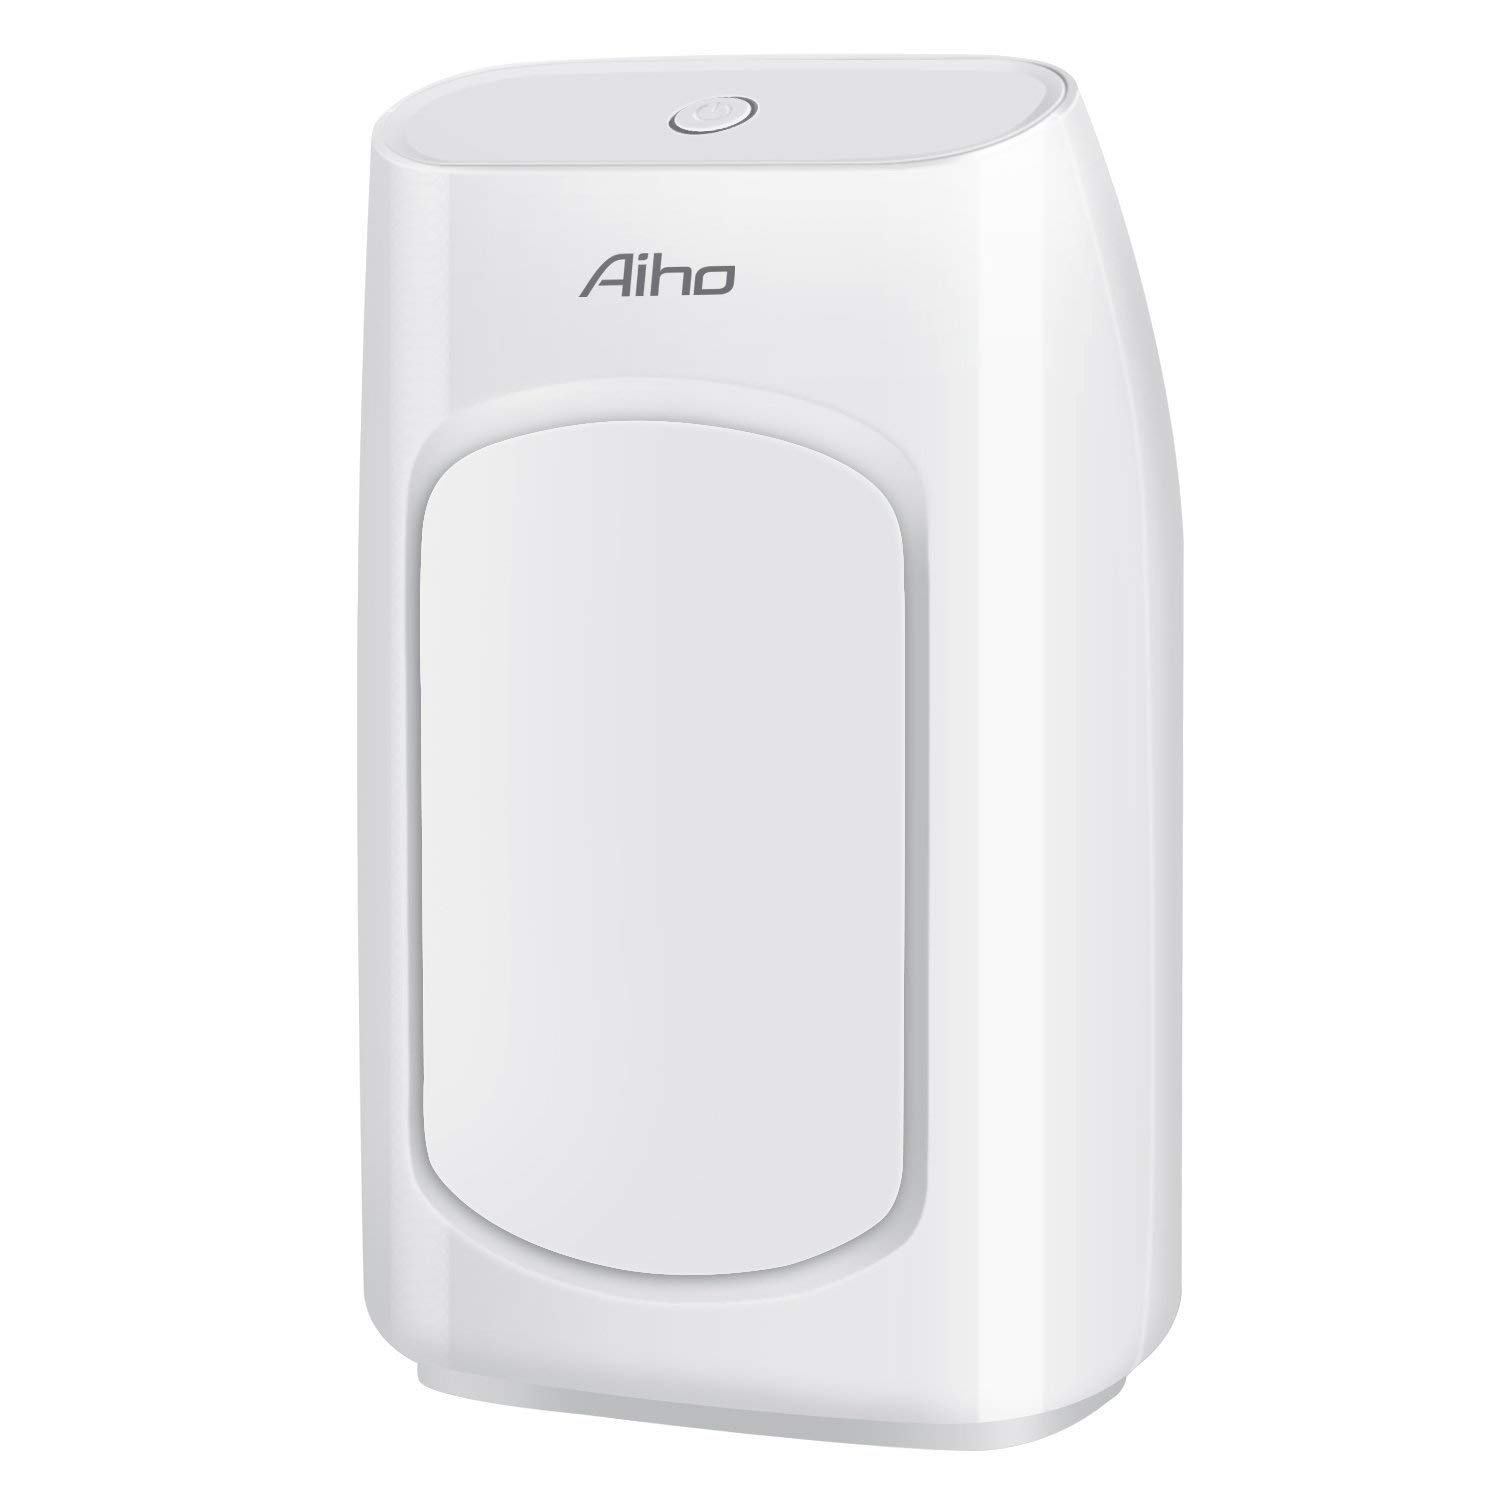 Air Dehumidifier Aiho Ultra Quiet Portable Home Dehumidifier 700ml Water Tank Capacity for Bedroom Kitchen Garage Basement Bookcase Damp